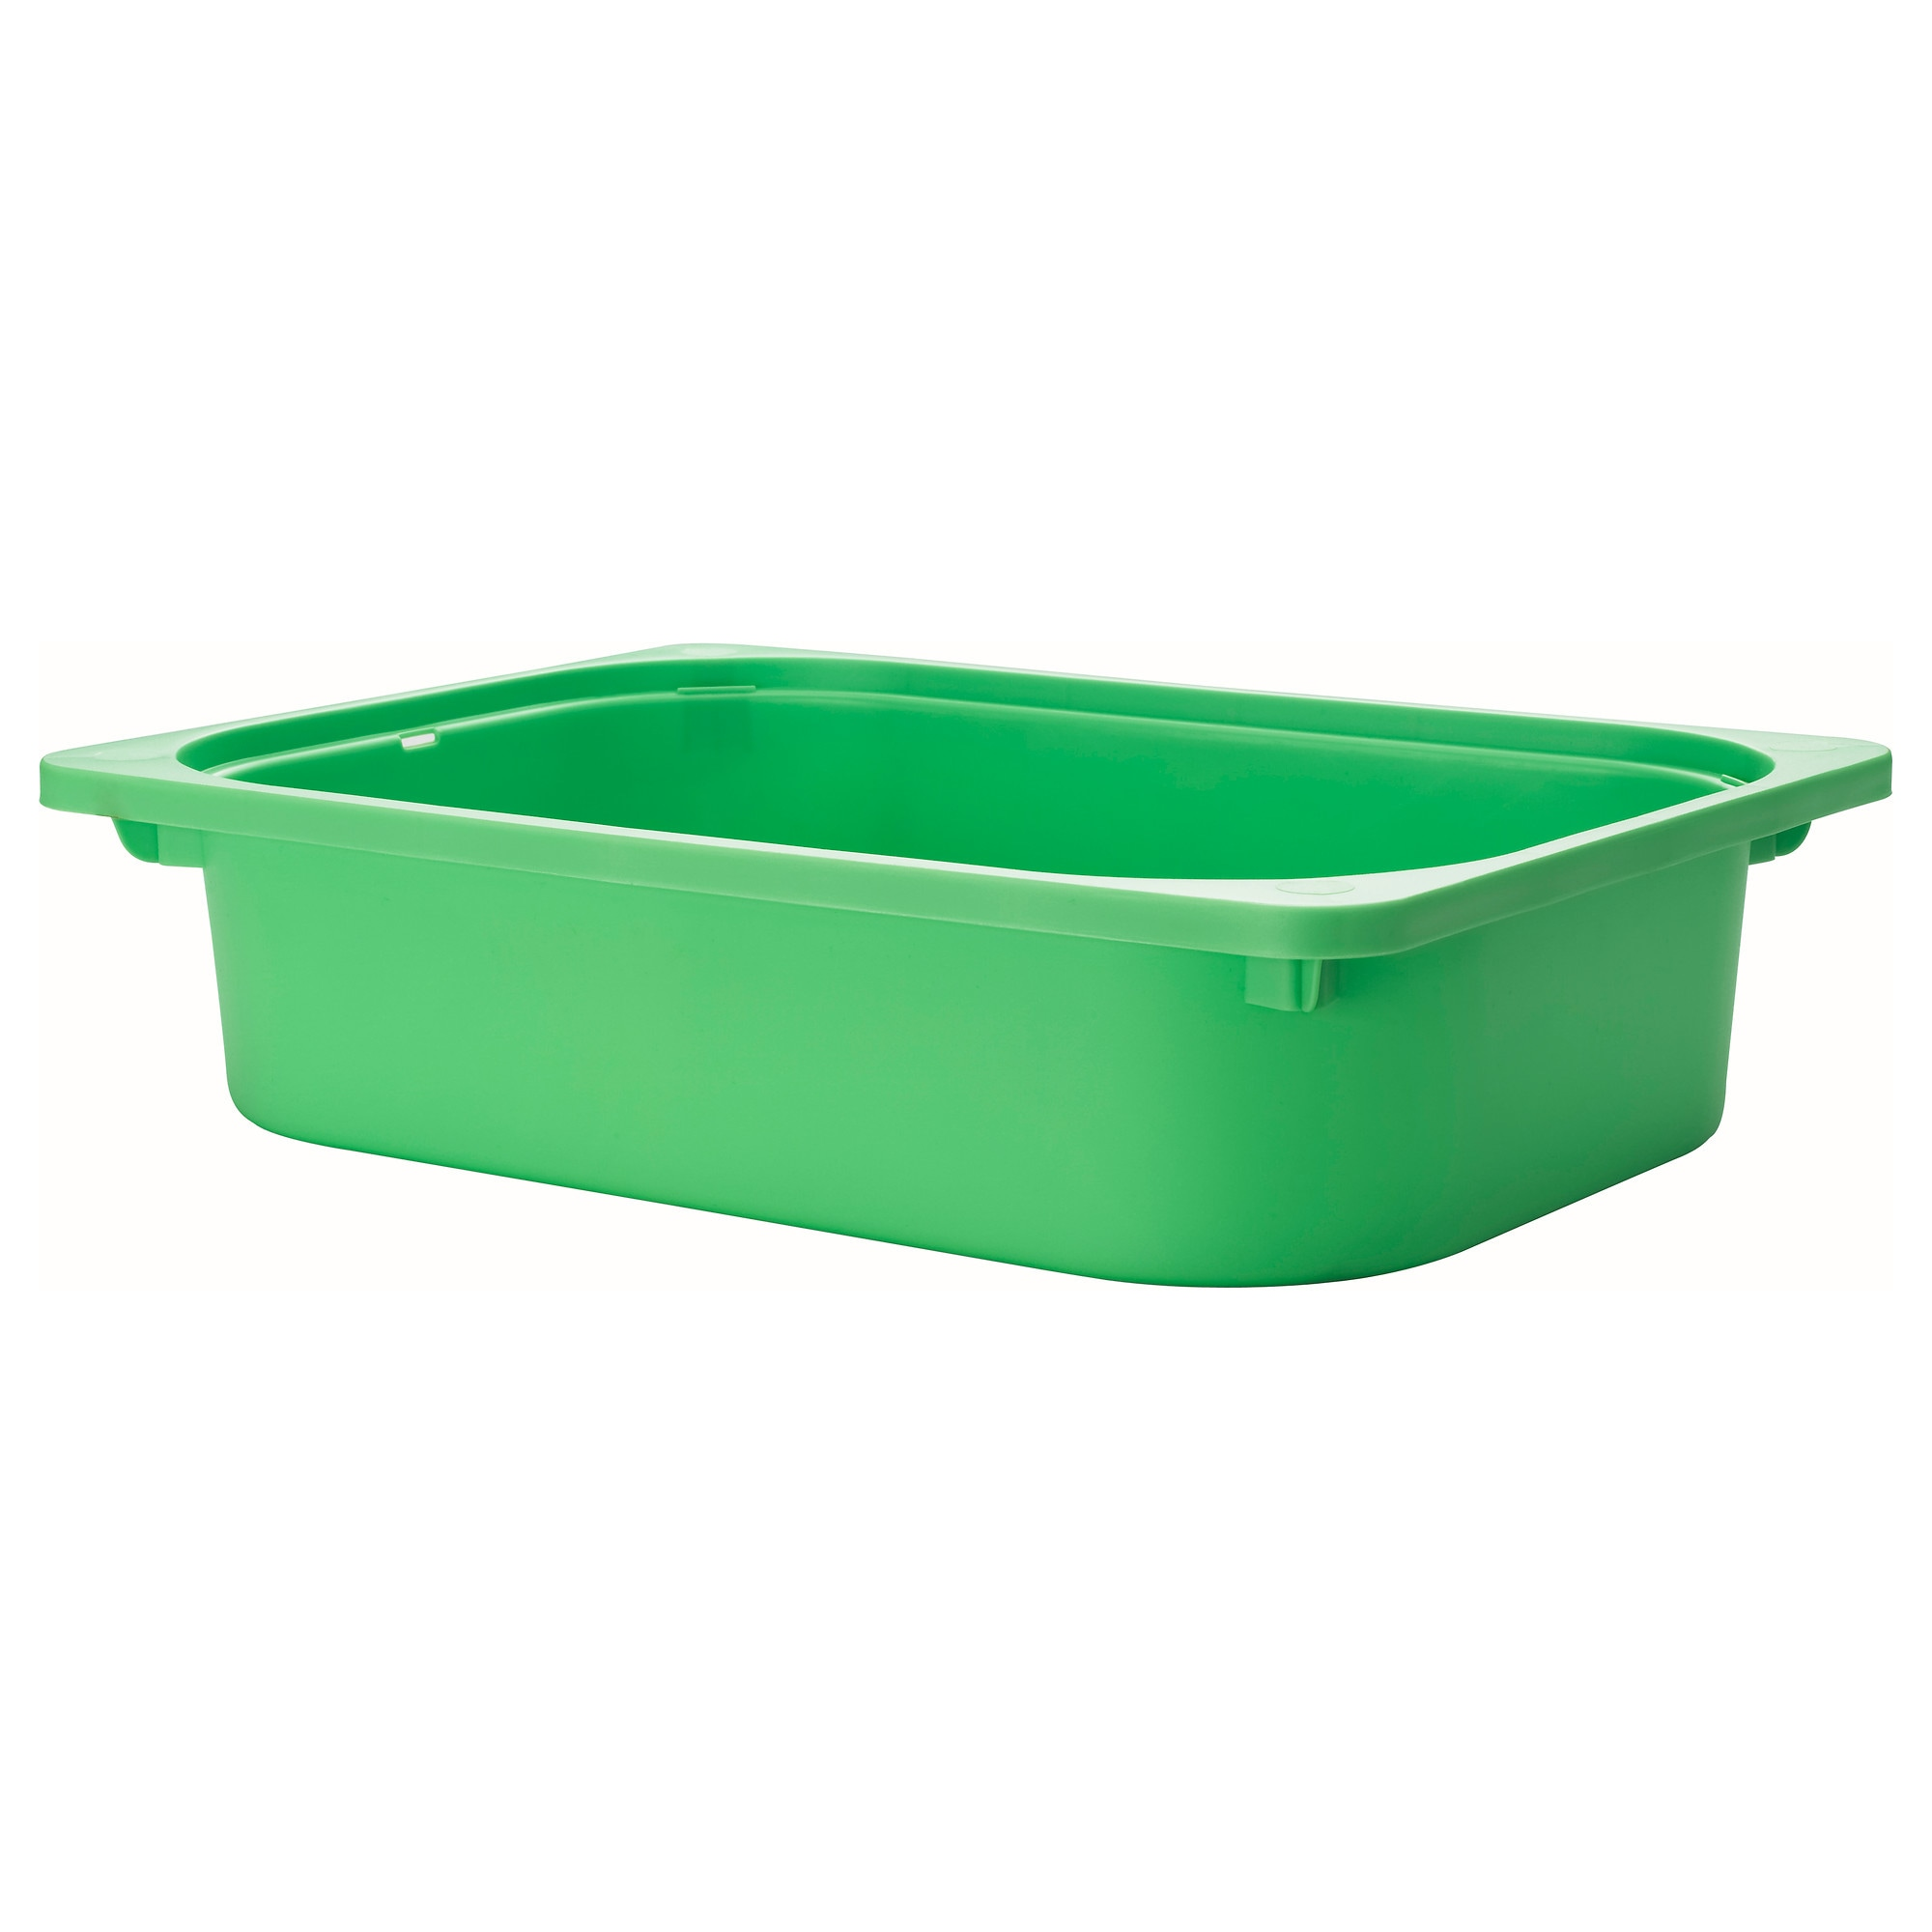 TROFAST storage box  green Length  16    quot  Width  11    quot  Height. TROFAST toy storage series   Combinations  amp  Boxes  amp  Lids   IKEA